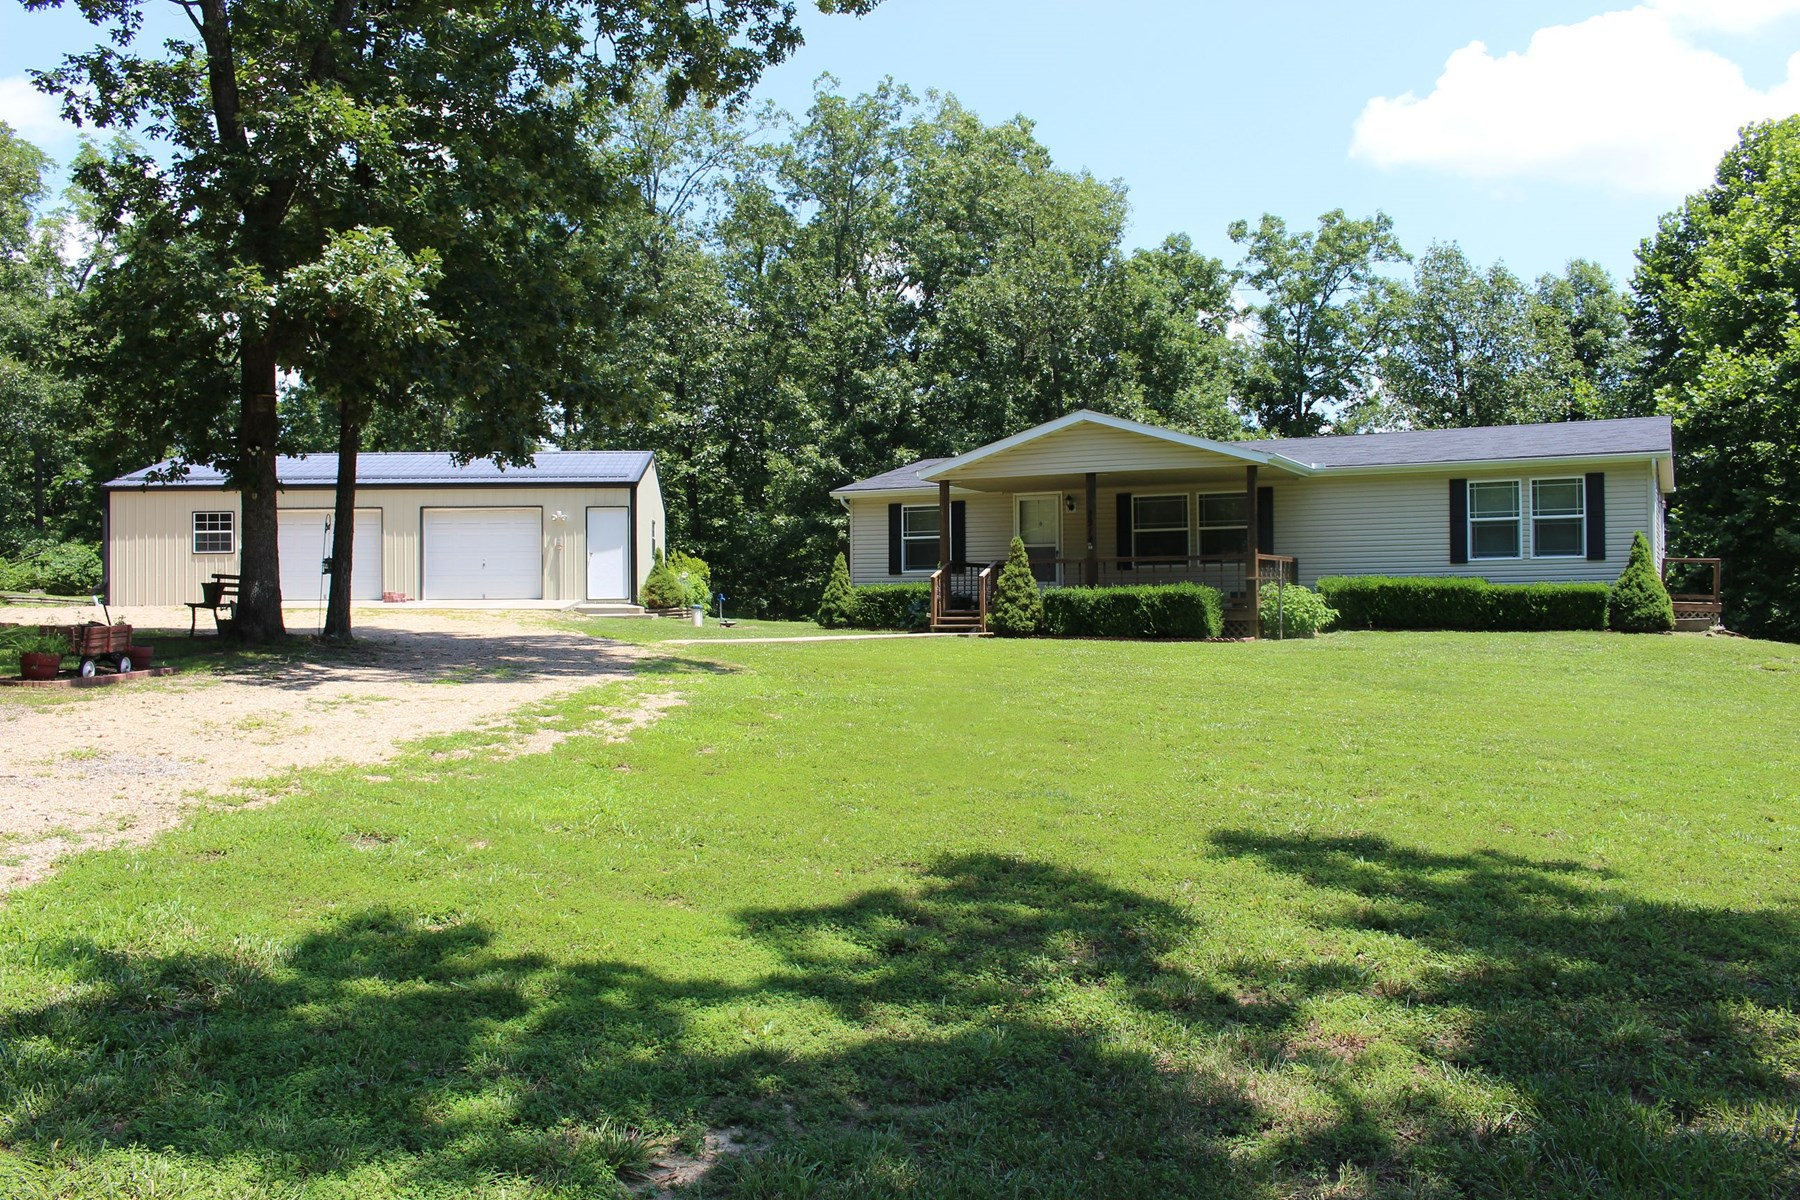 3 BR Country Home w/ Lake Access & 2 Car Garage on Blacktop